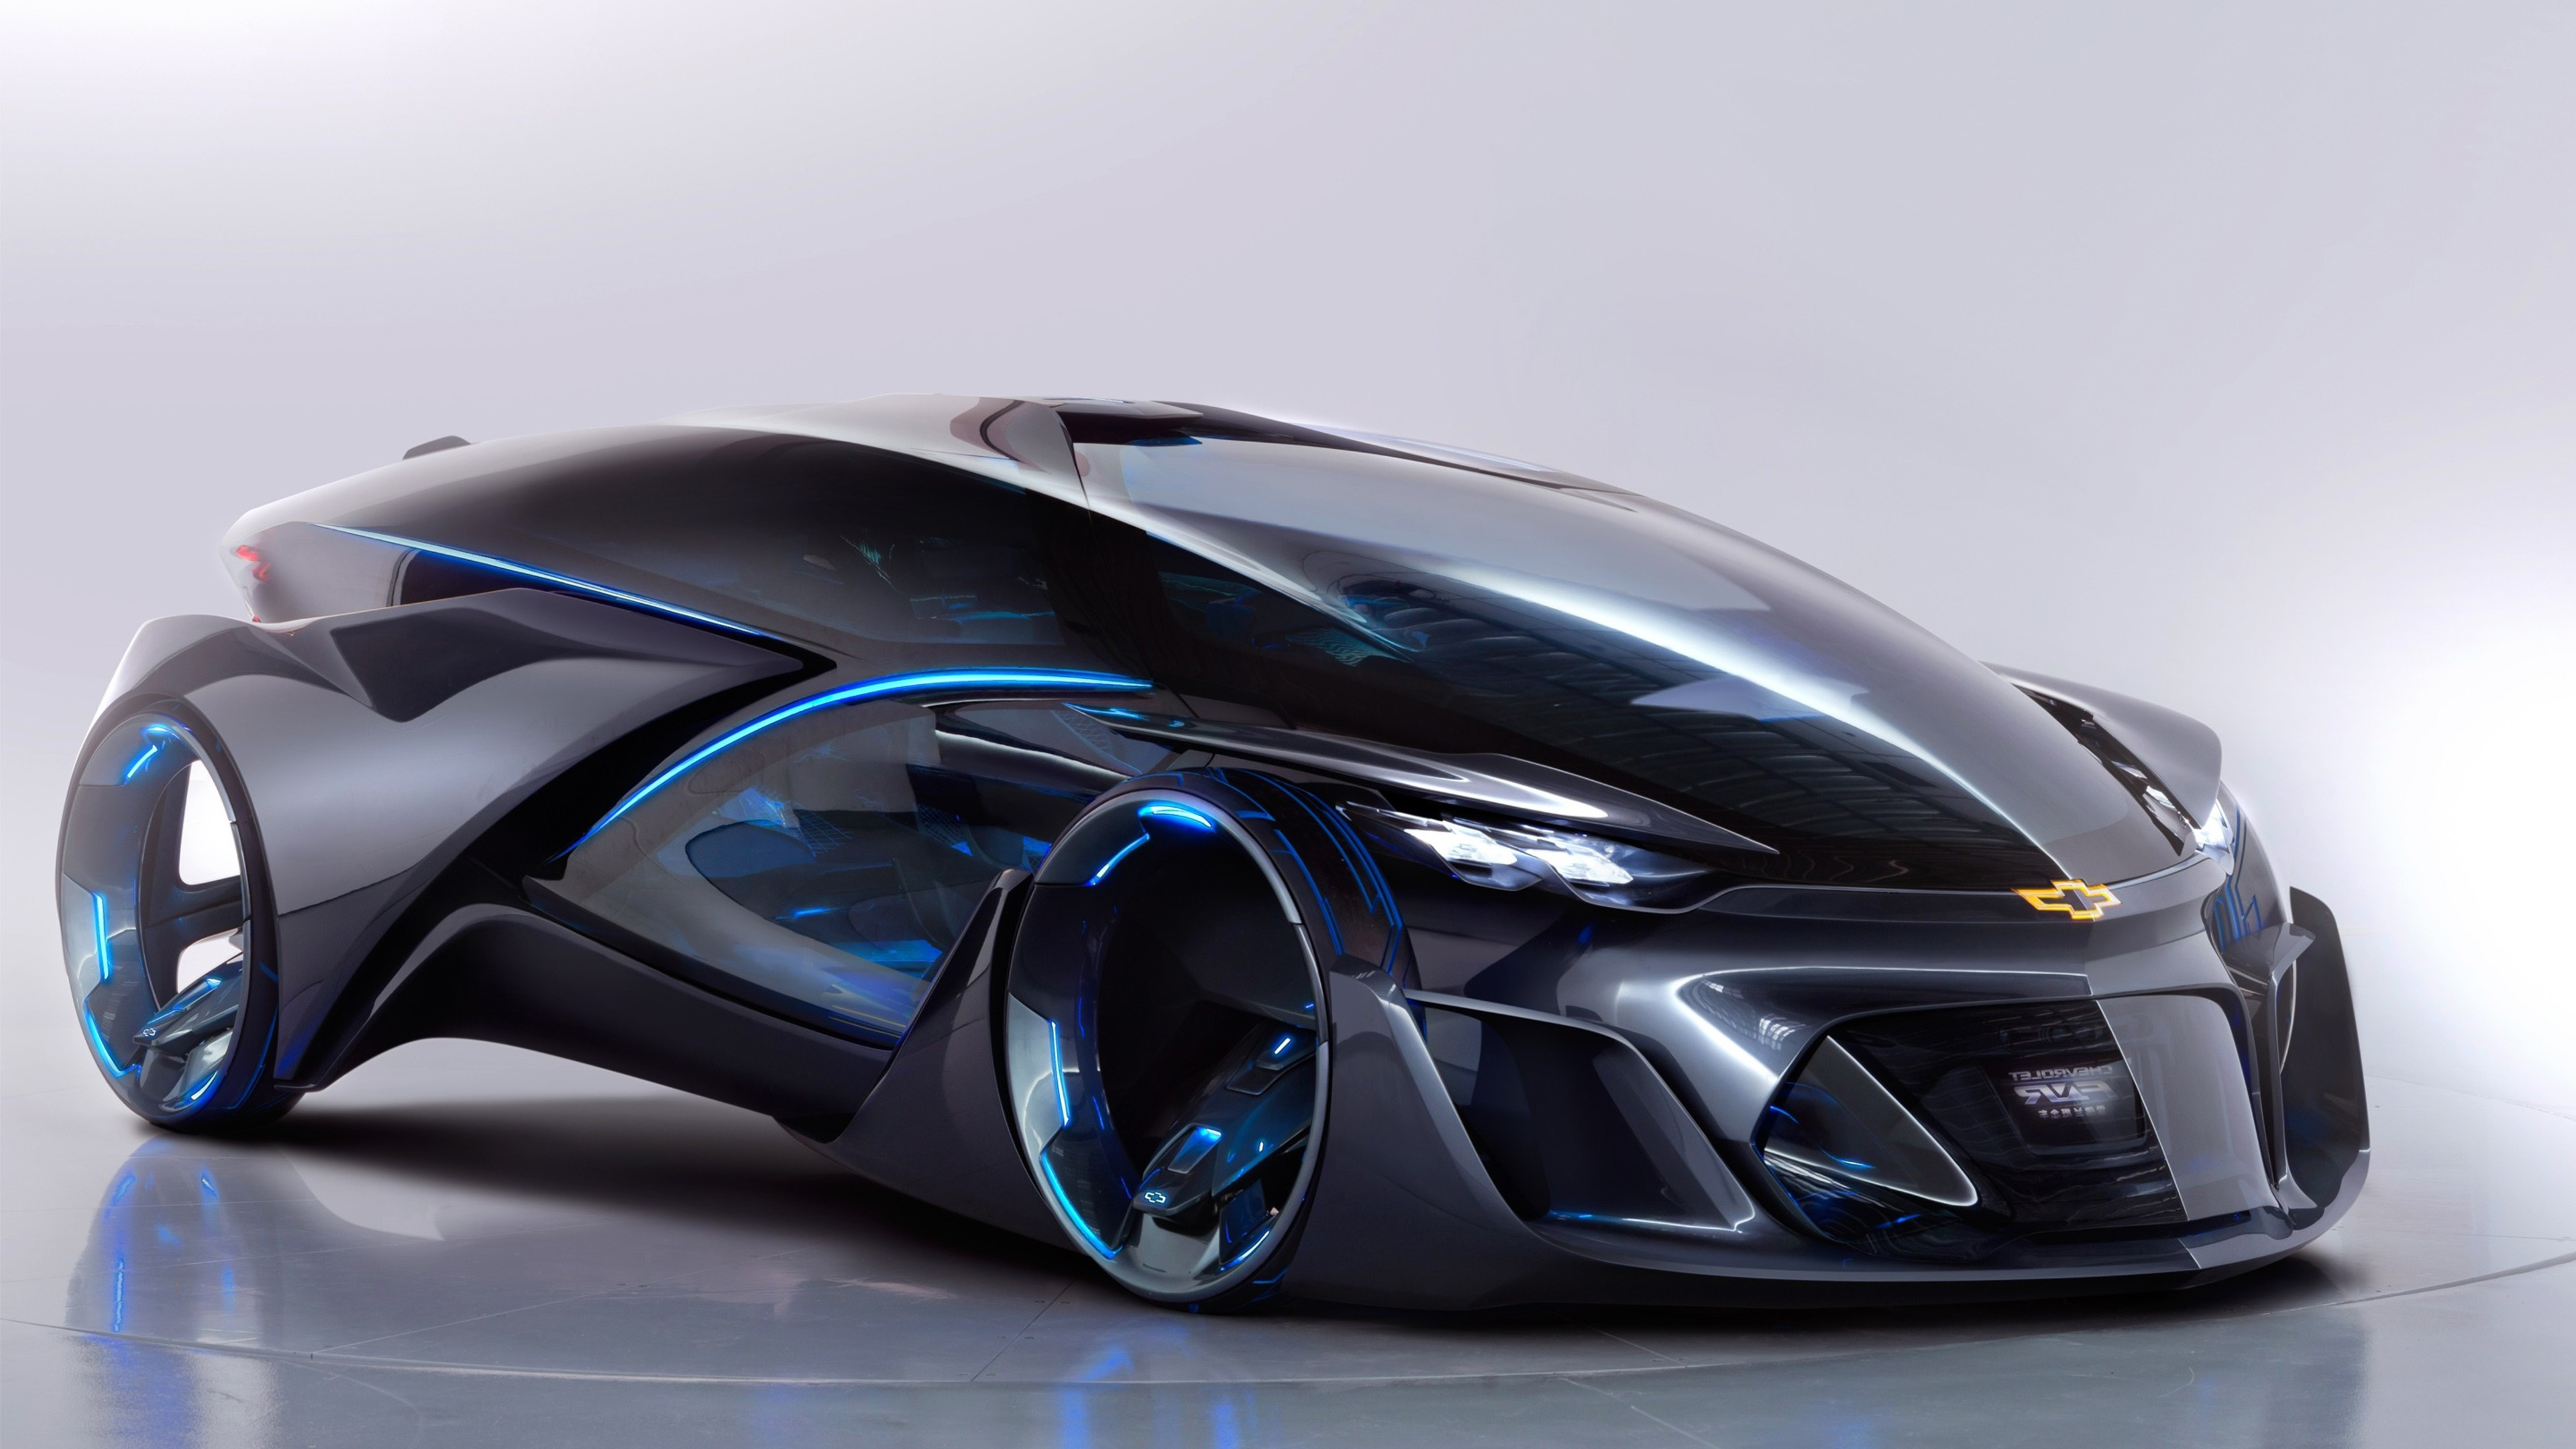 Chevrolet Fnr Concept Car Wallpaper